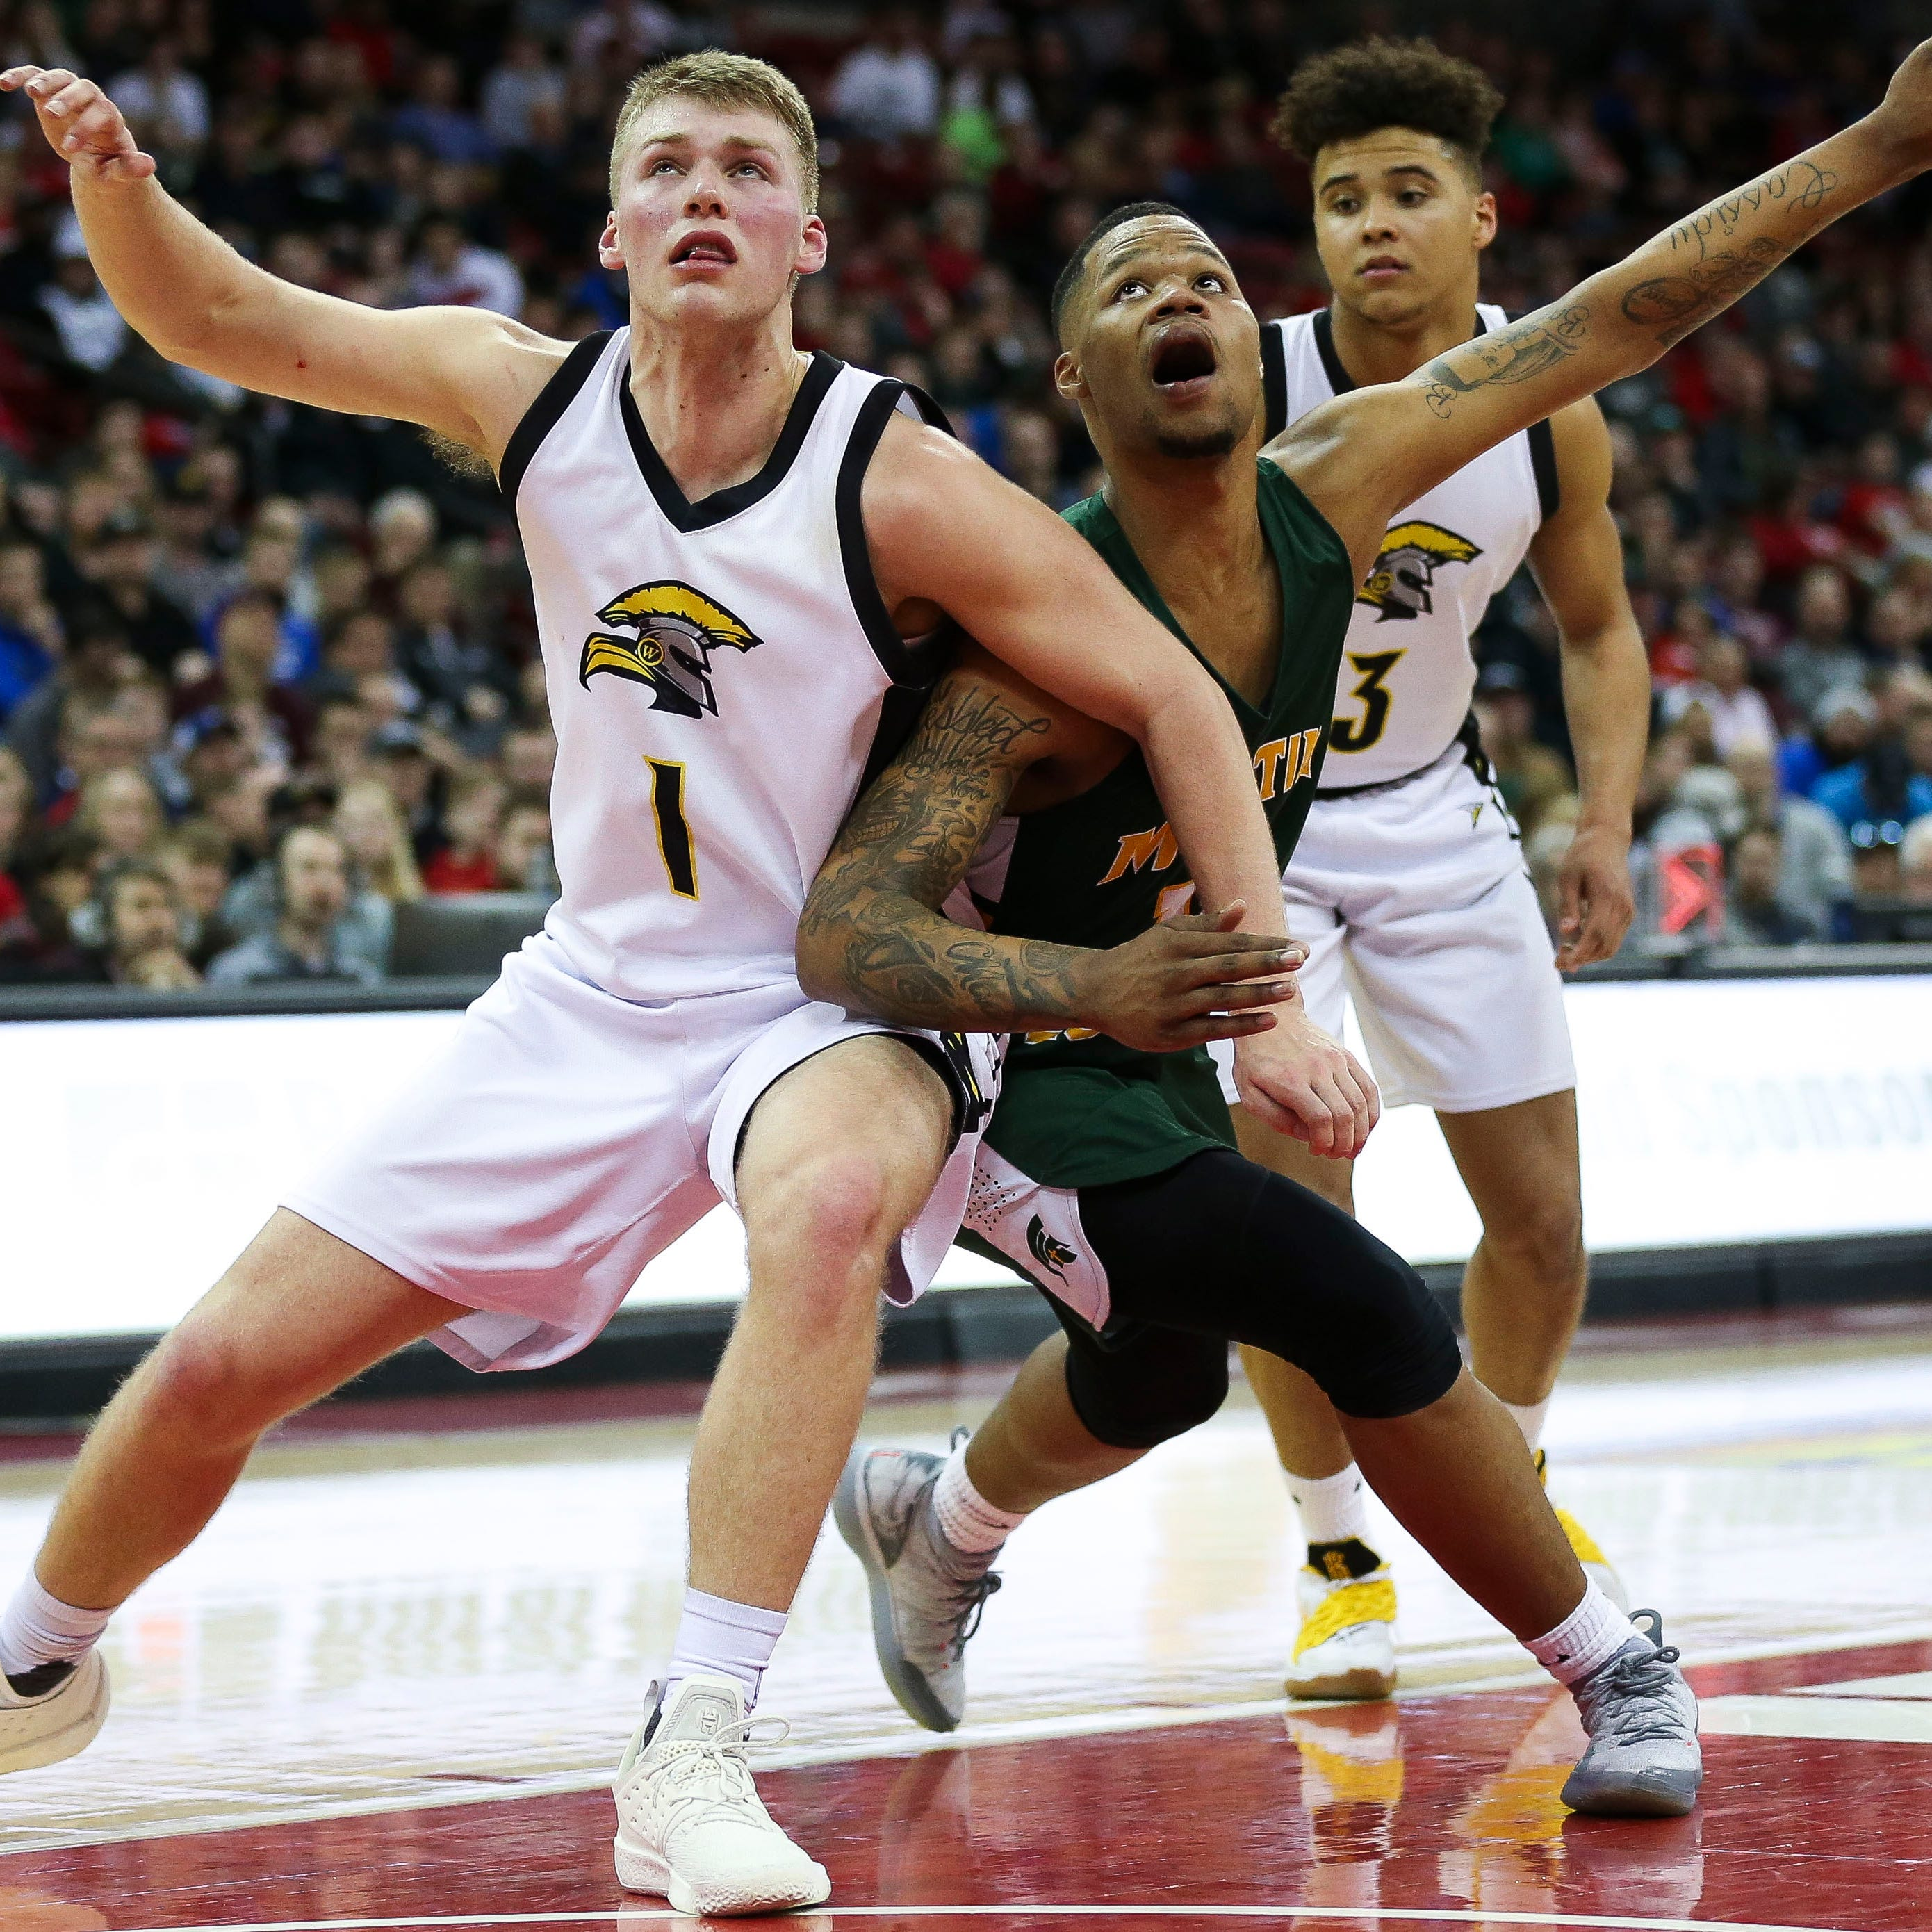 WIAA state basketball notes: Warriors unable to overcome early deficit